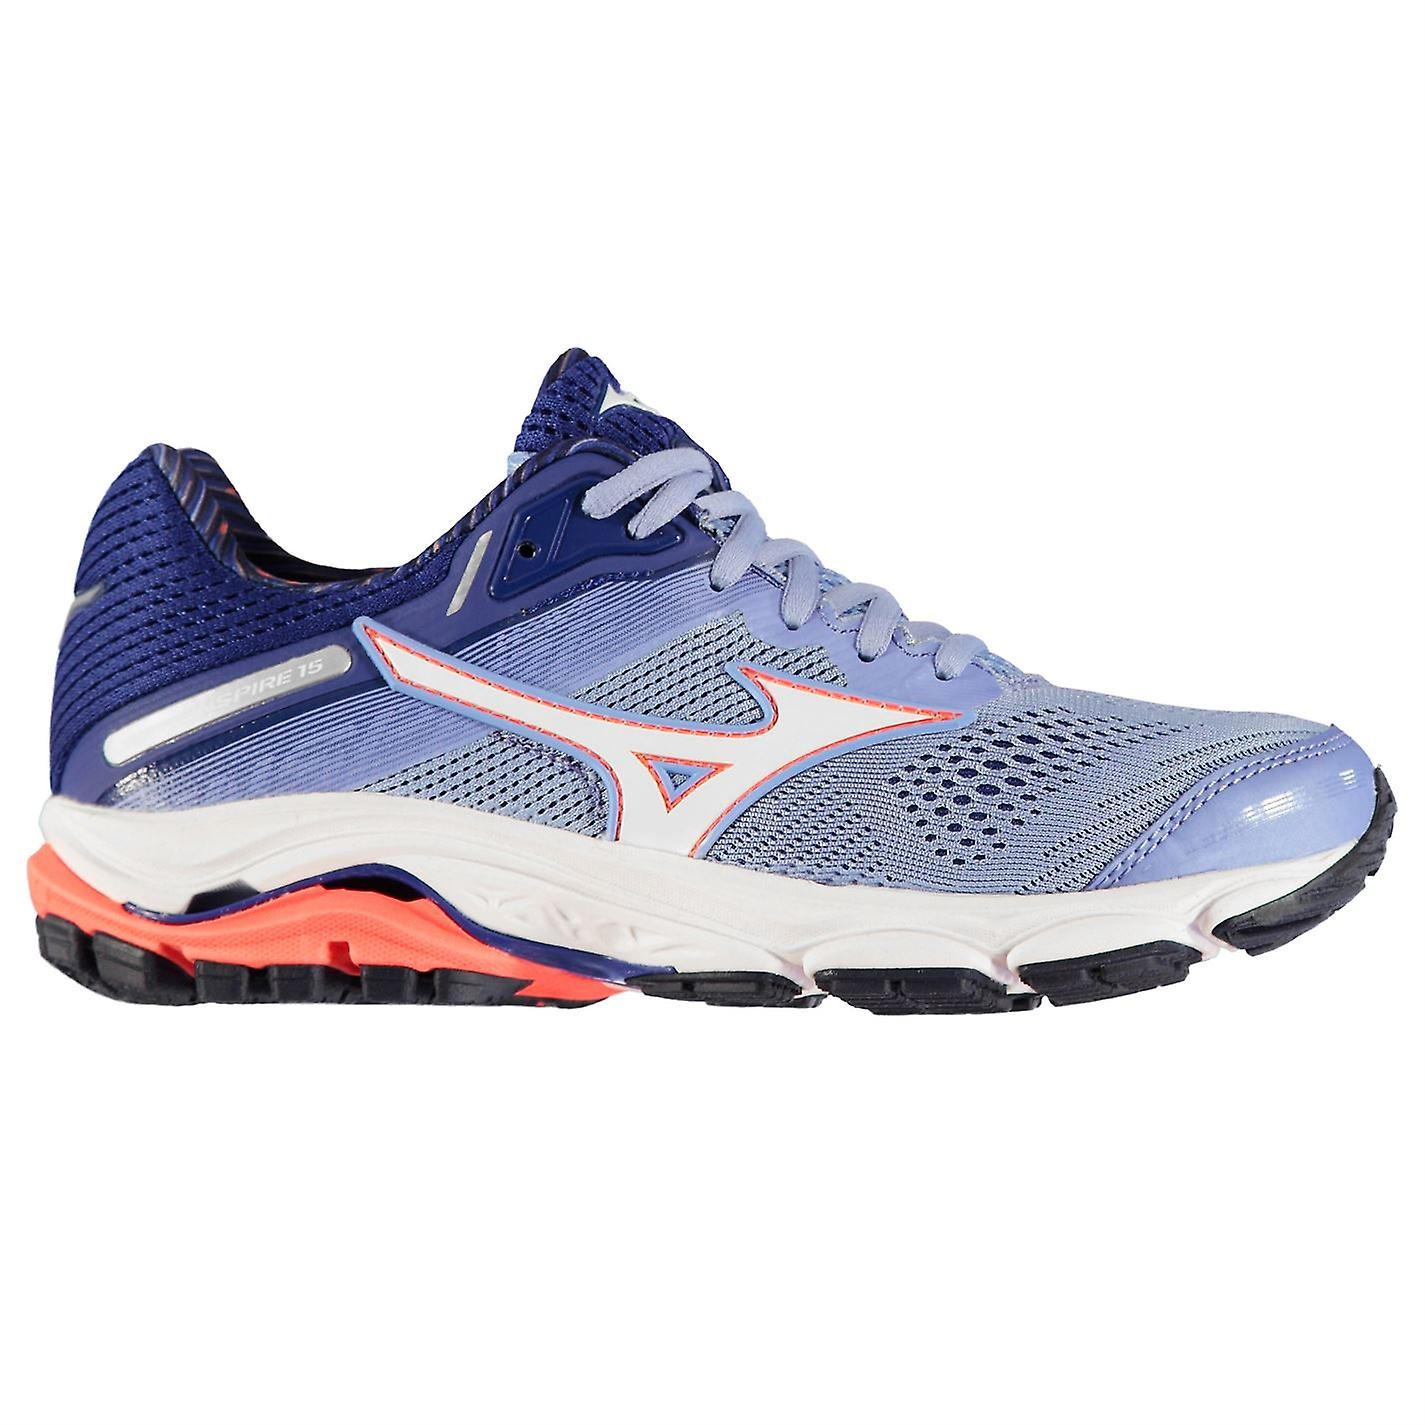 Mizuno Womens Wave Inspire 15 Ladies Running Shoes Sports Trainers Sneakers MR5Zy